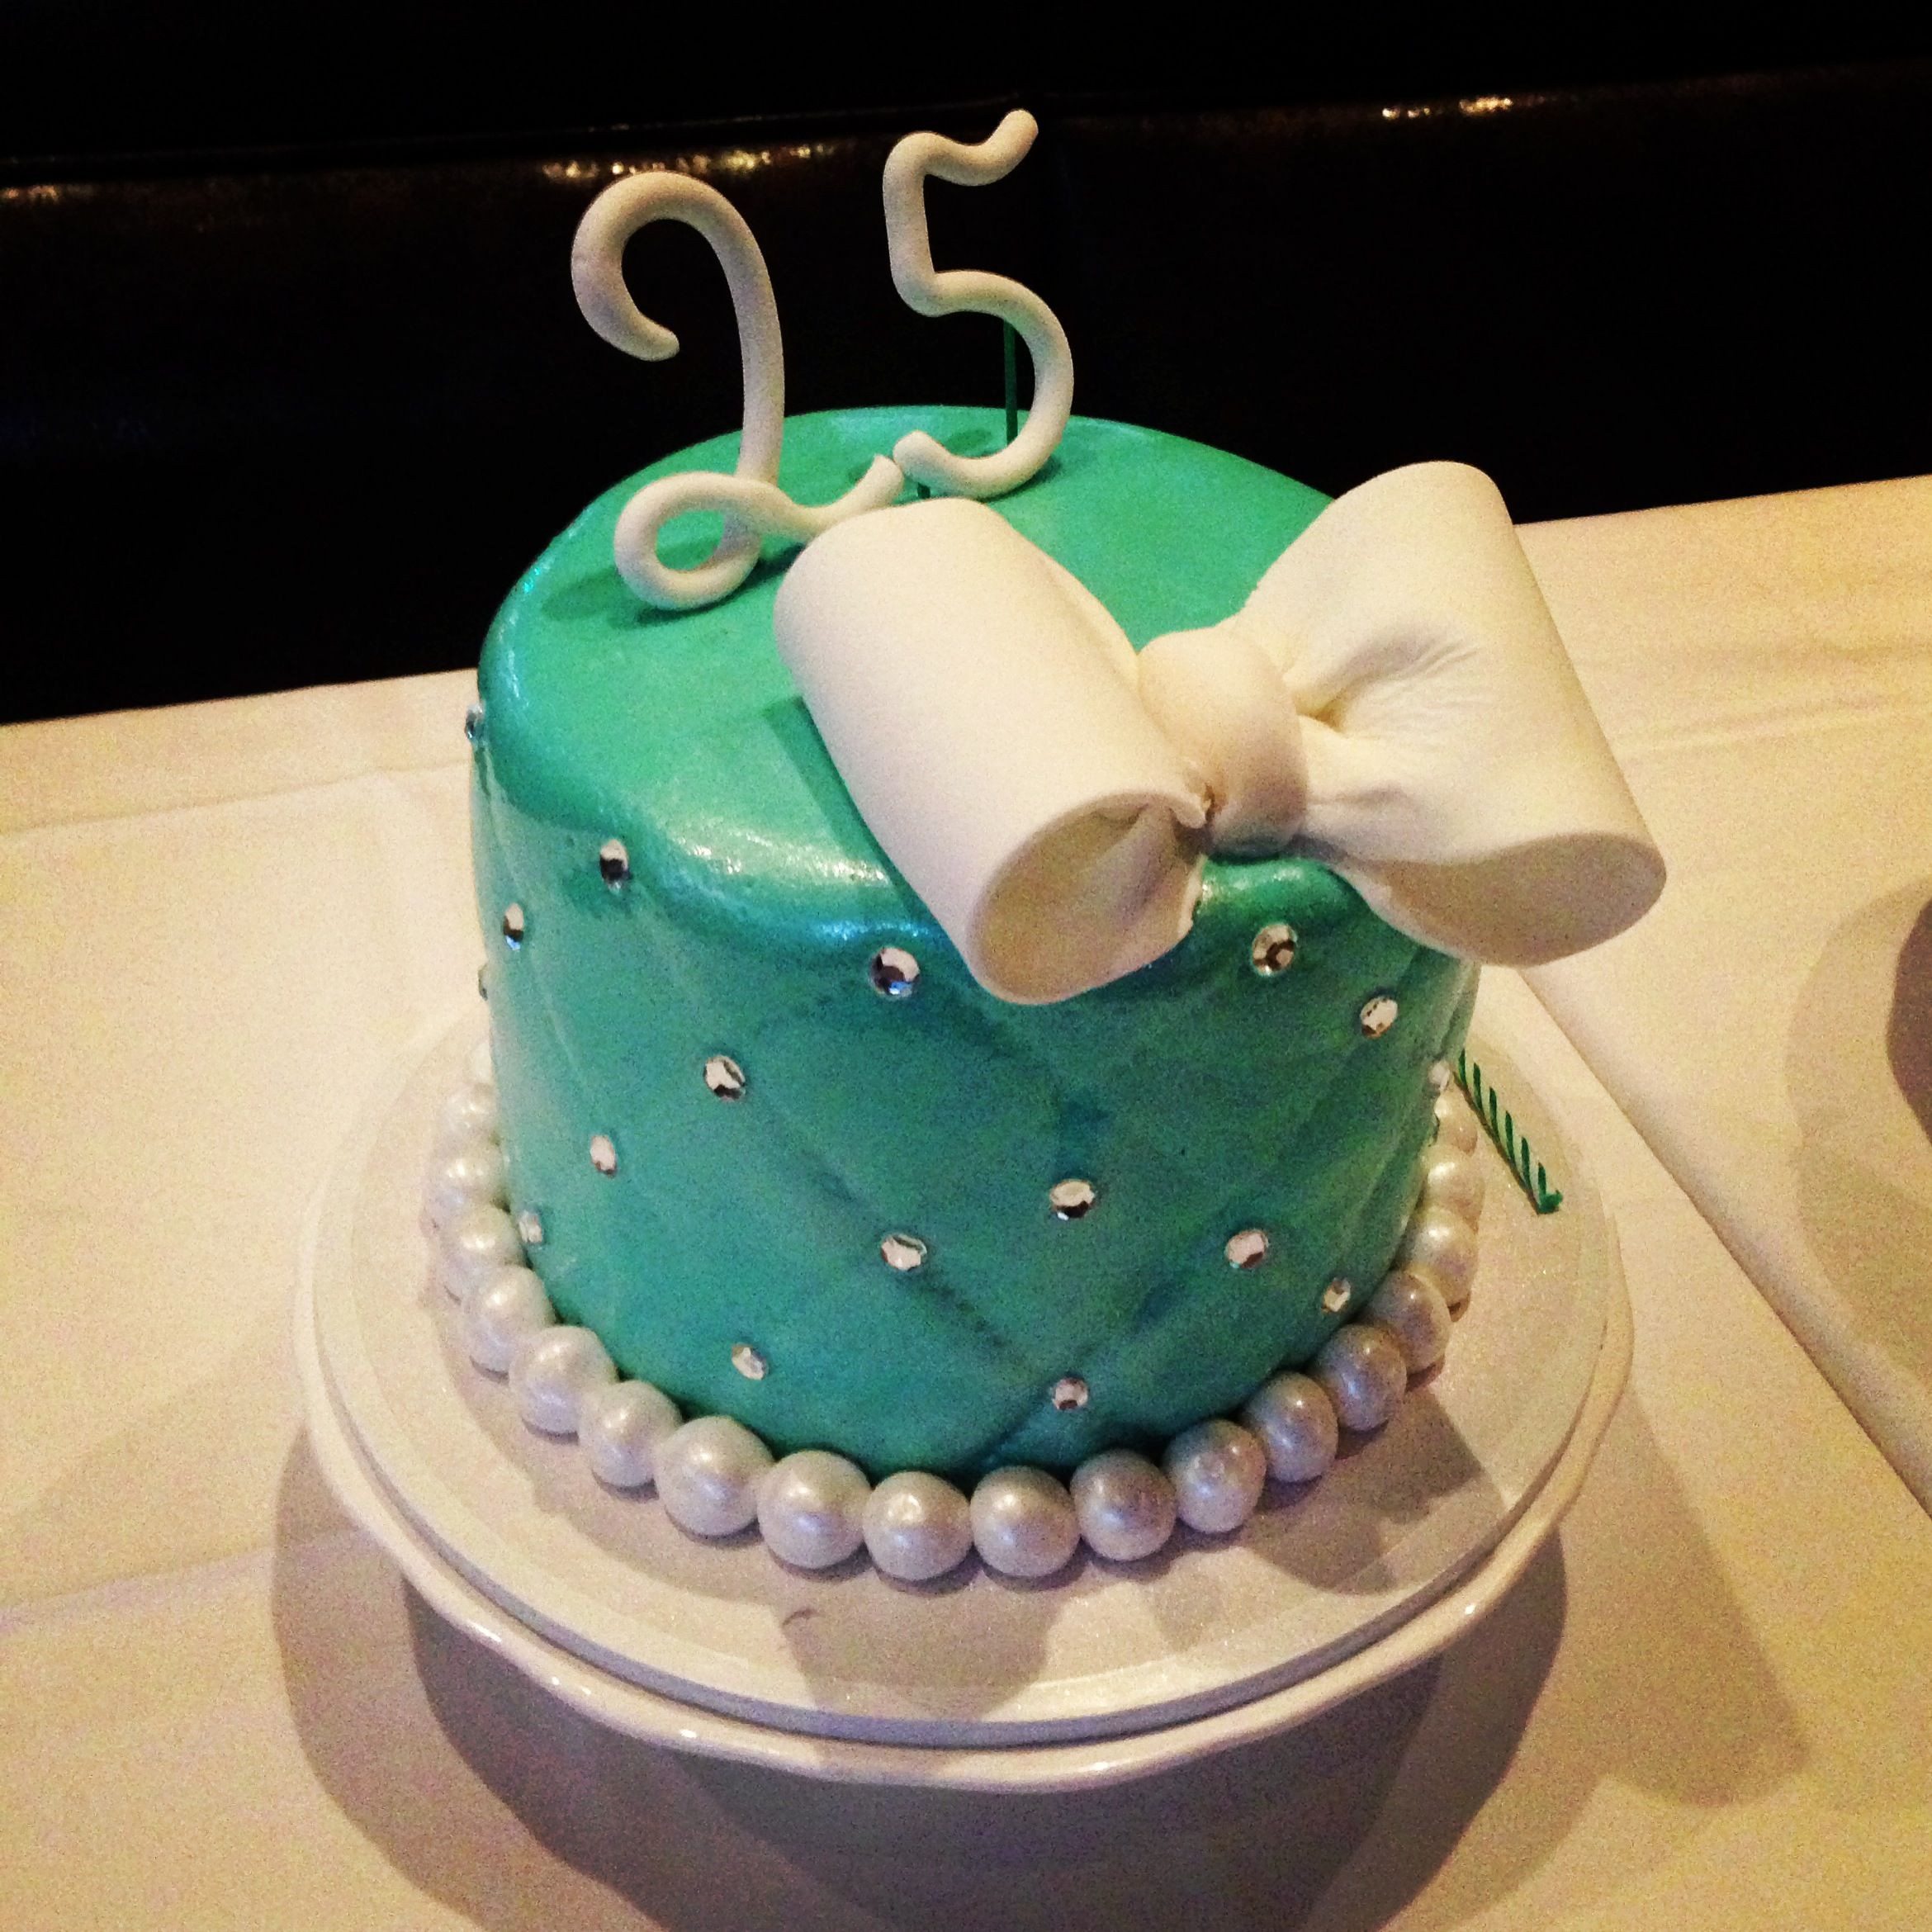 Best ideas about 25 Birthday Cake . Save or Pin Best 25 25th birthday ideas on Pinterest Now.